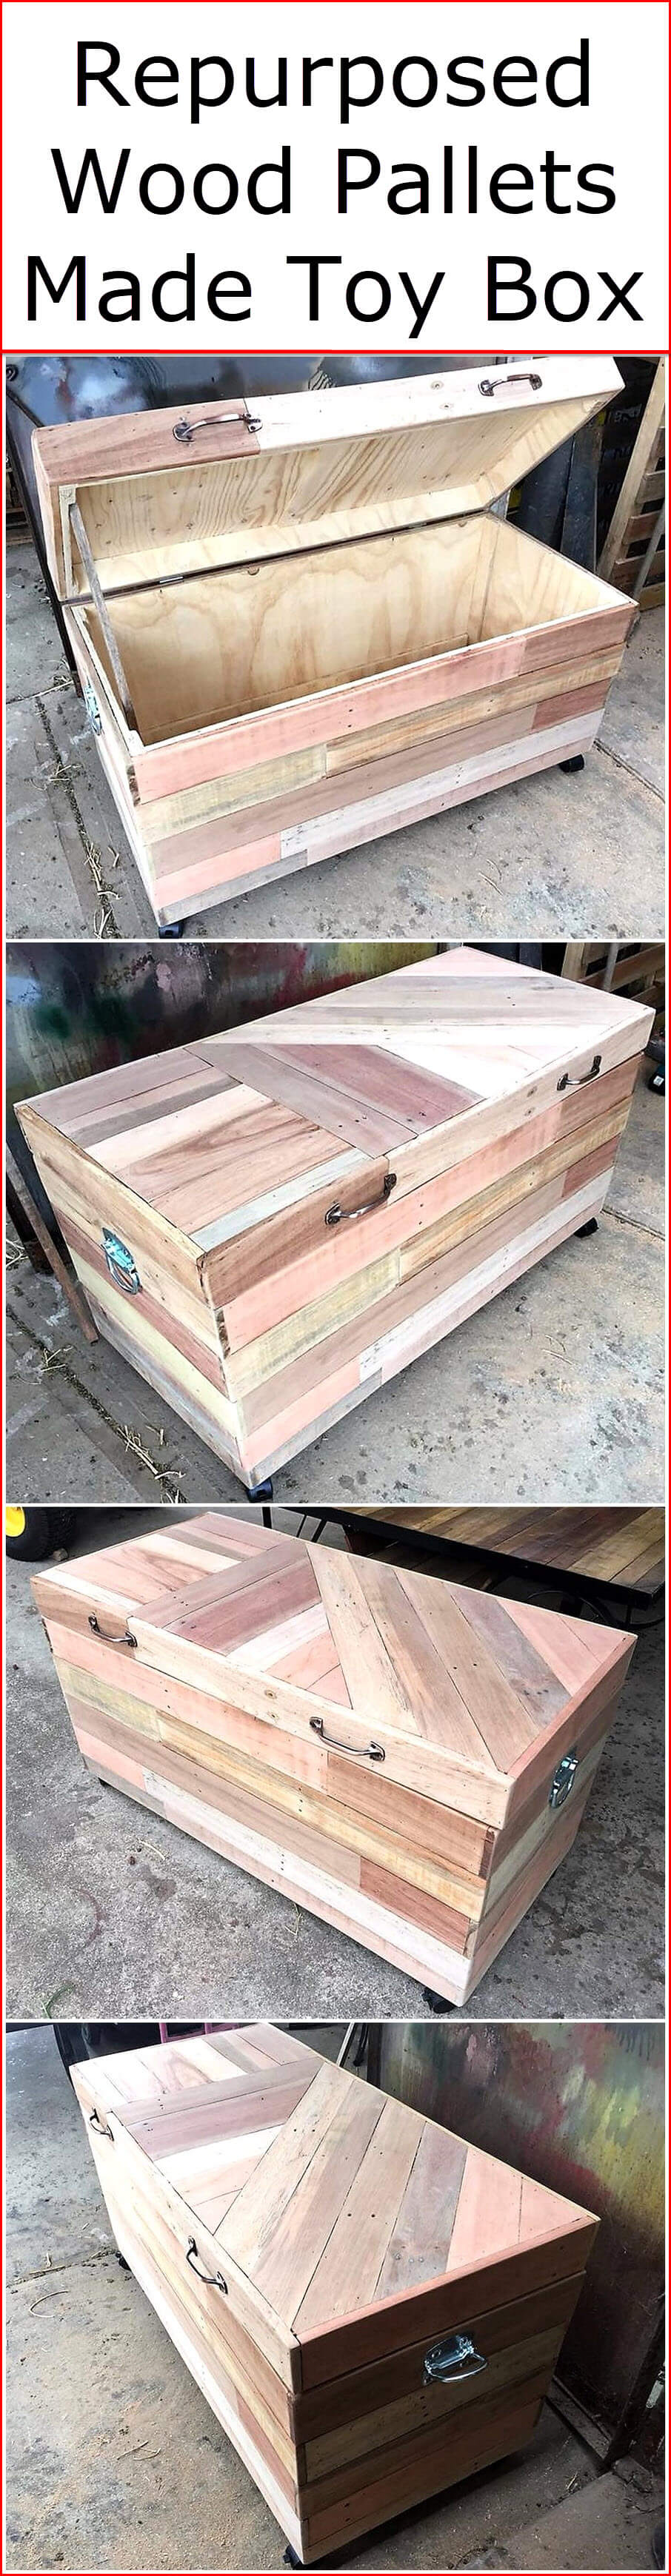 Repurposed Wood Pallets Made Toy Box Pallet Ideas